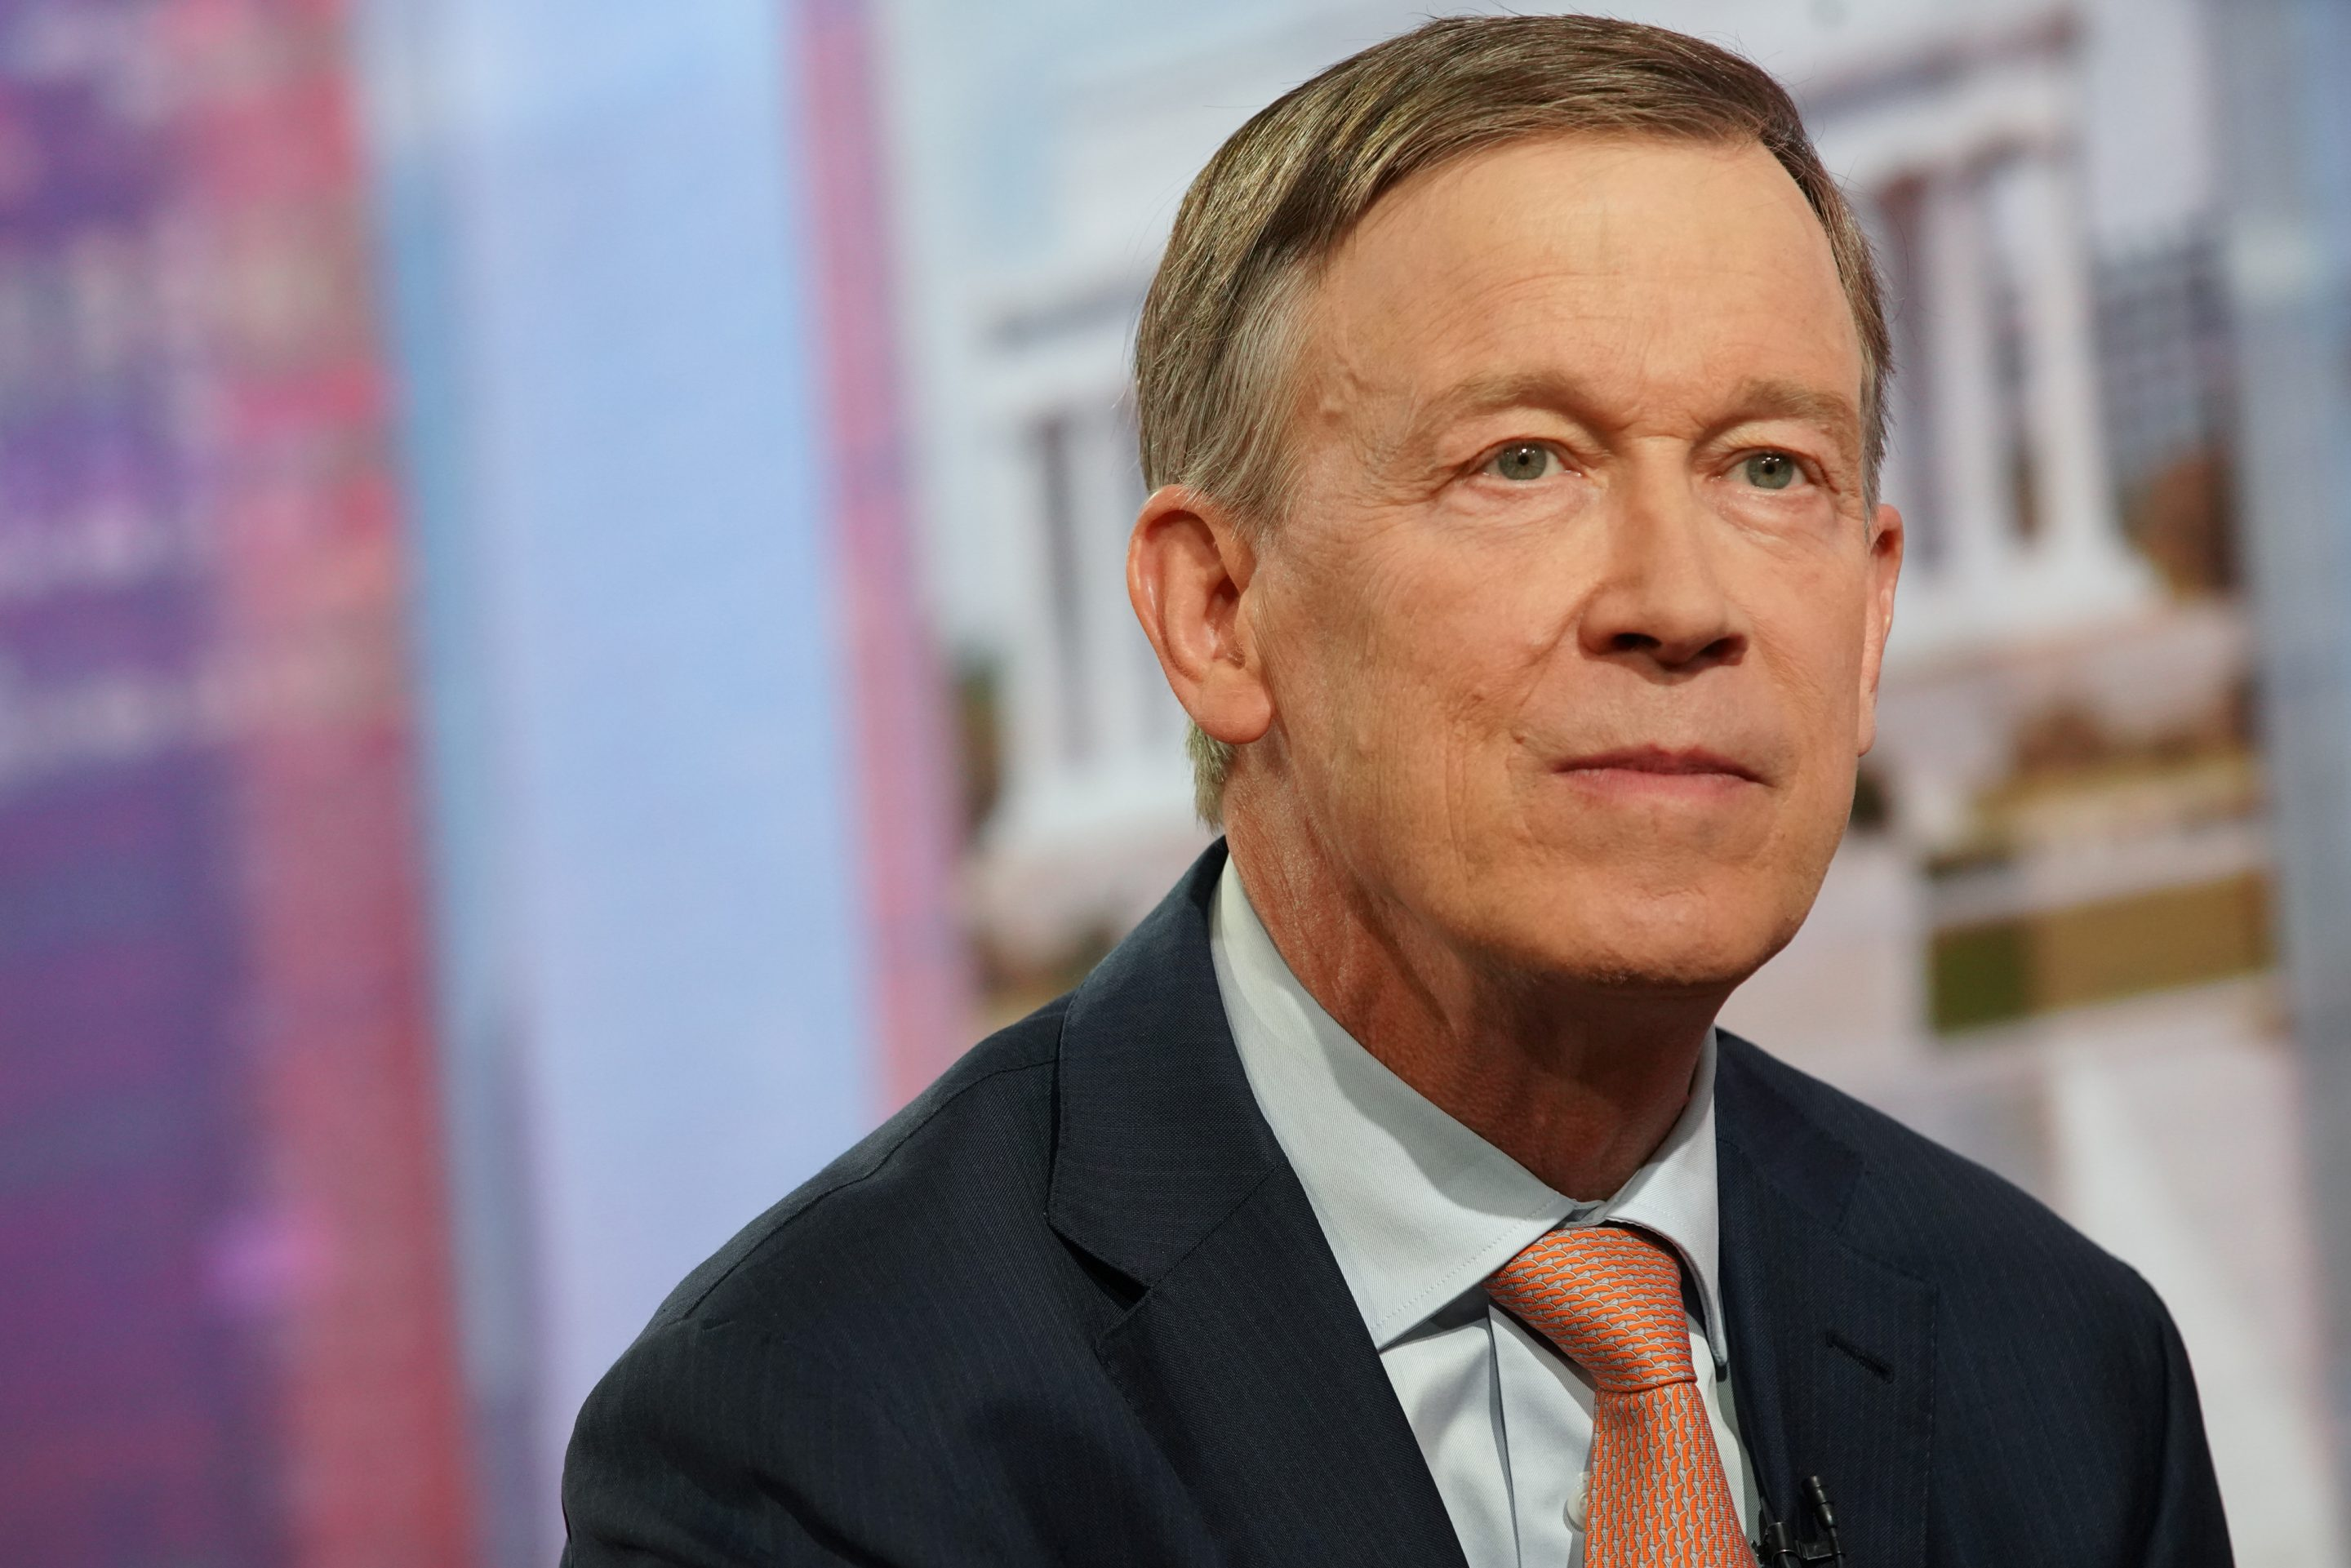 John Hickenlooper, former governor of Colorado and 2020 presidential candidate, listens during a Bloomberg Television interview in New York, U.S., on Friday, July 19, 2019.